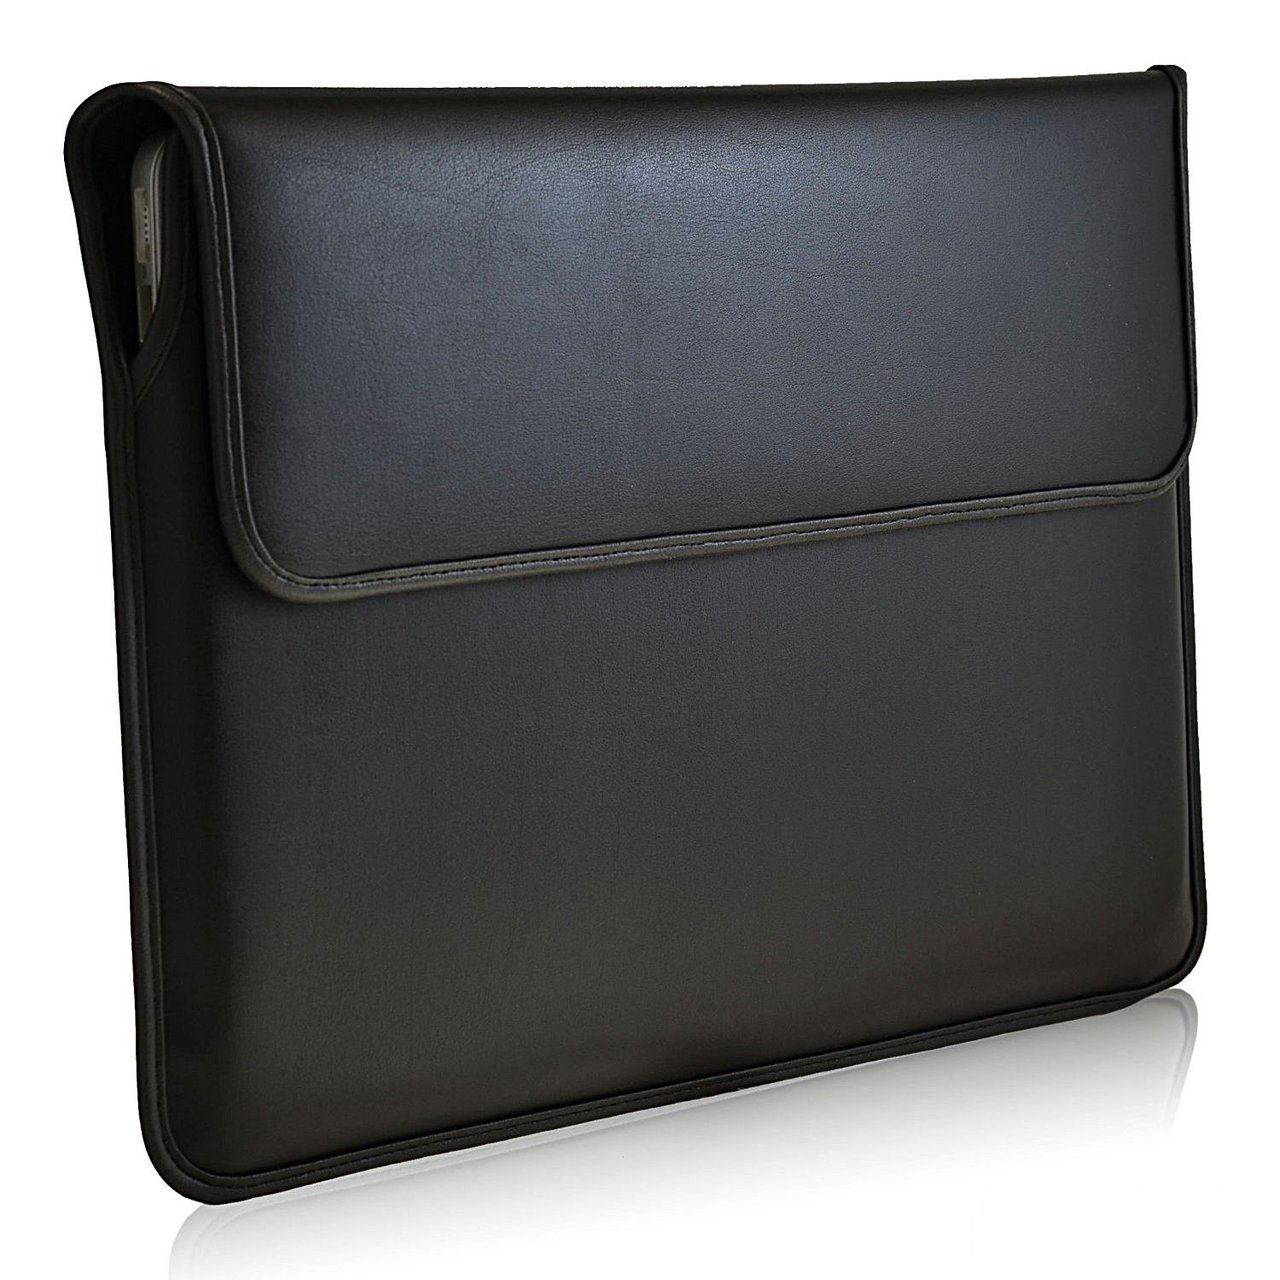 new style 44376 c9189 Black Leather 13.3in Laptop Sleeve Case for MacBook Air, Macbook Pro with  Retina, Ultrabook